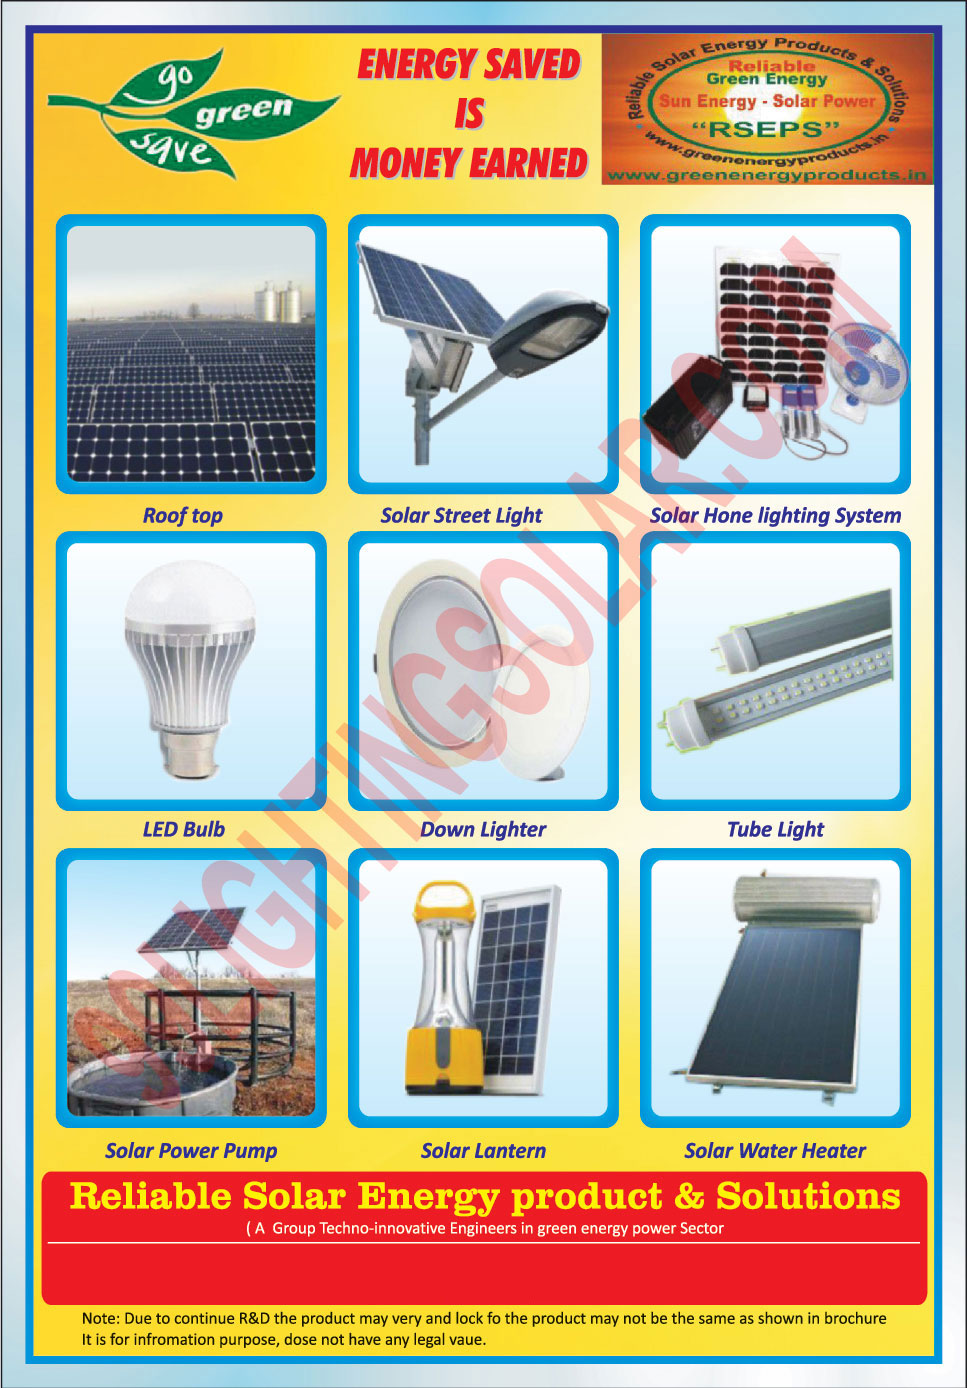 Down Lighters, Led Lights, Led Bulbs, Solar Home Light Systems, Solar Lanterns, Solar Power Pumps, Solar Street Lights, Solar Water Heaters, Tube Lights, Roof Tops